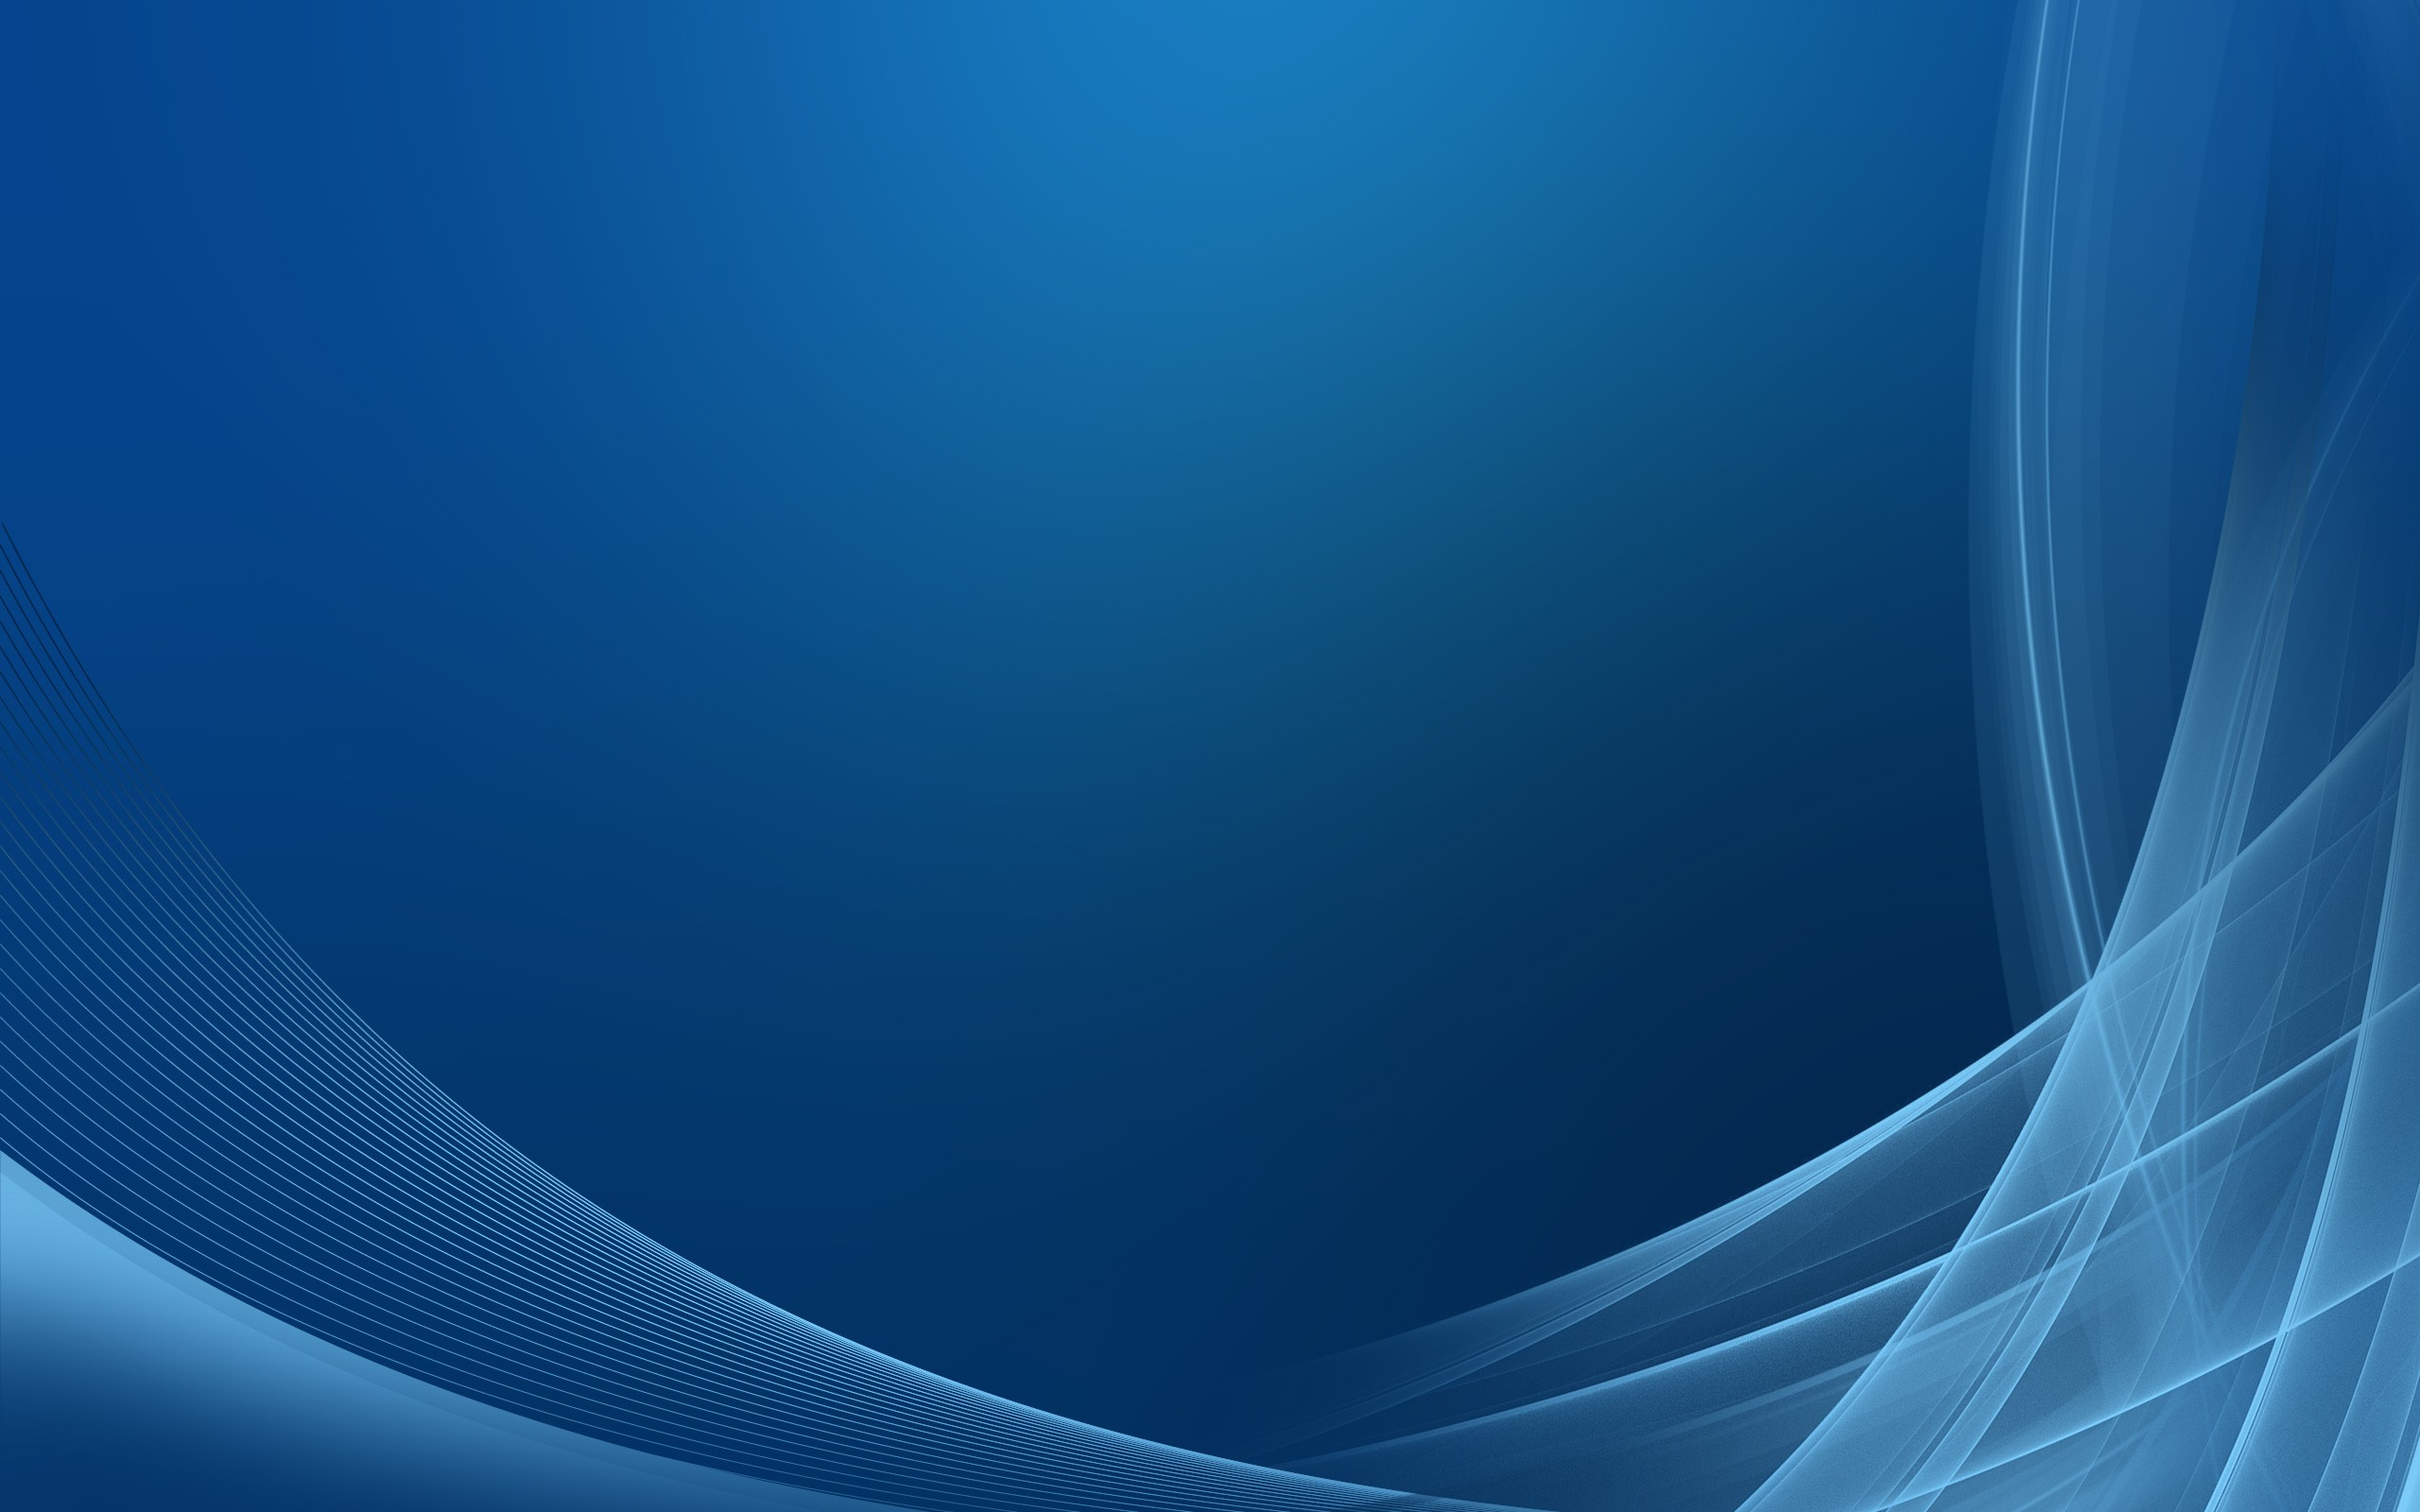 65  blue backgrounds  u00b7 u2460 download free awesome wallpapers for desktop  mobile  laptop in any